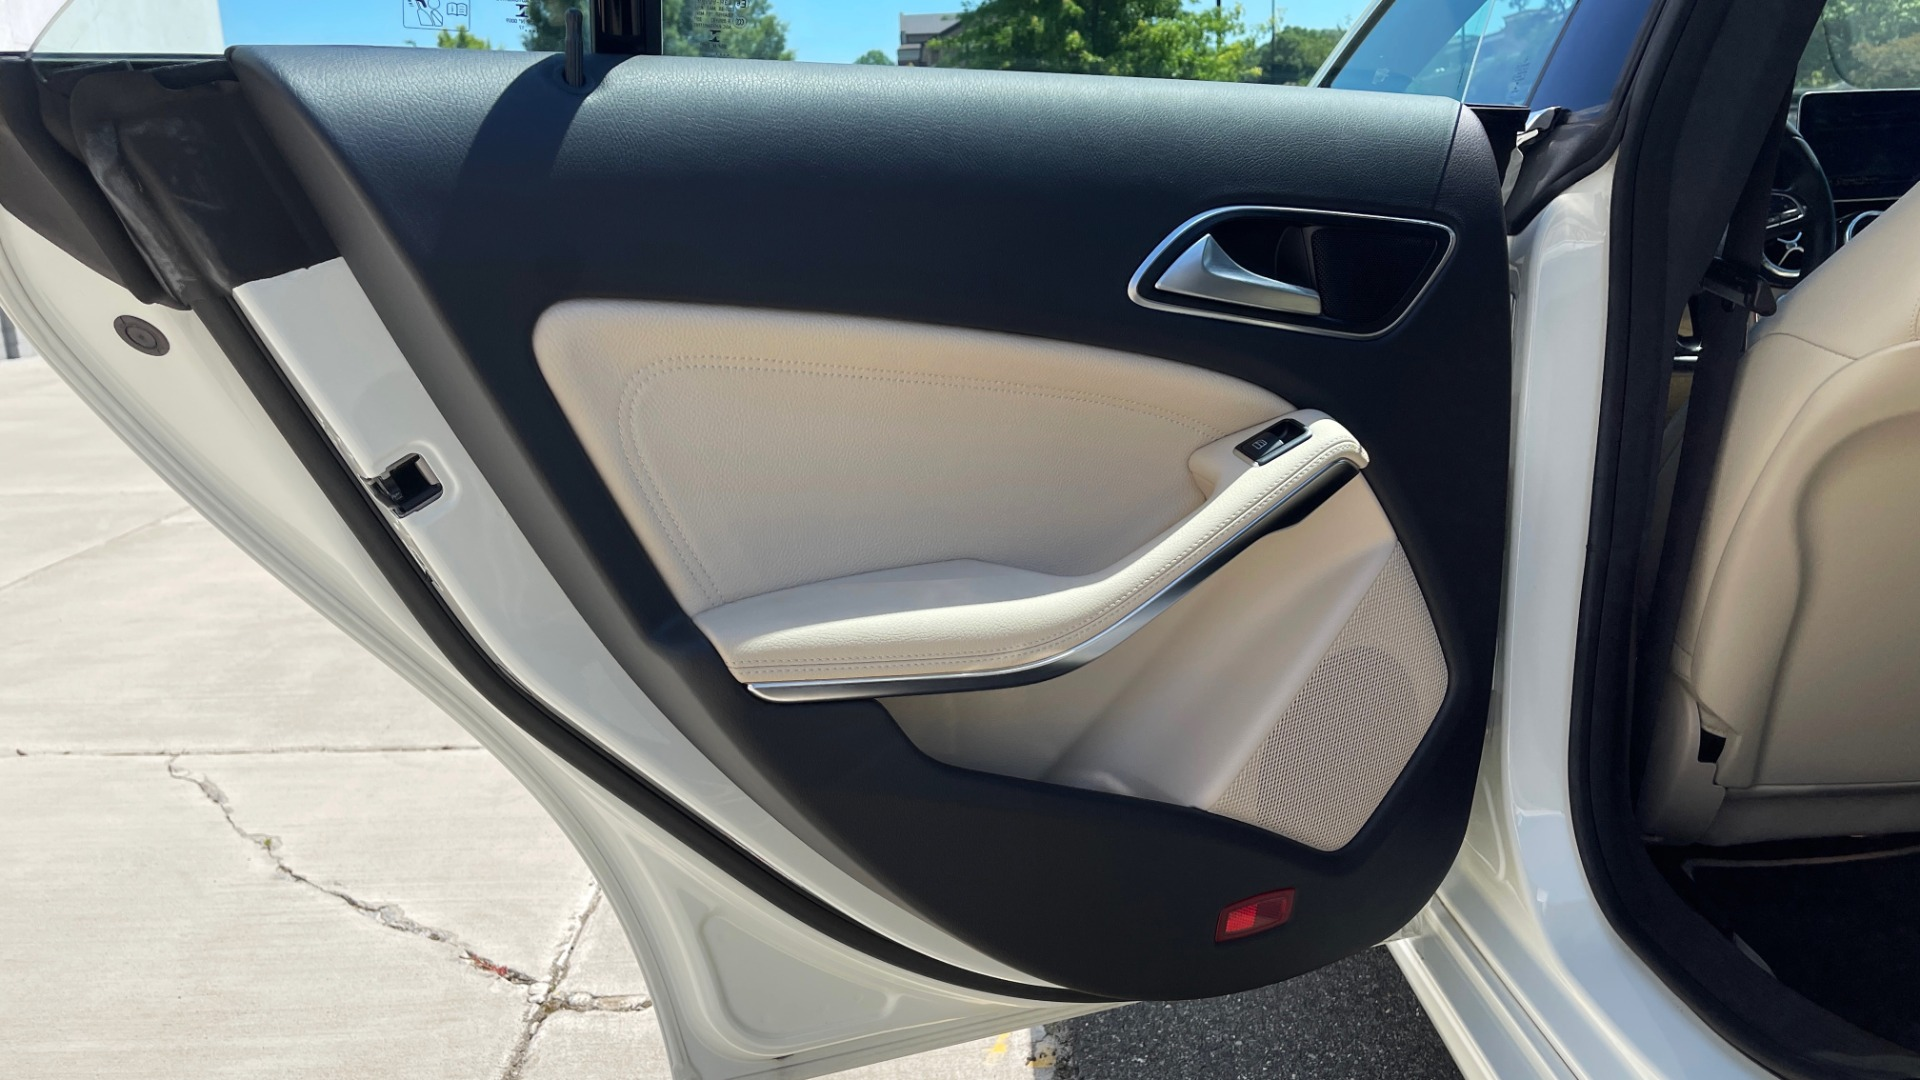 Used 2018 Mercedes-Benz CLA 250 PREMIUM / CONV PKG / APPLE / PANO-ROOF / REARVIEW for sale $29,795 at Formula Imports in Charlotte NC 28227 55